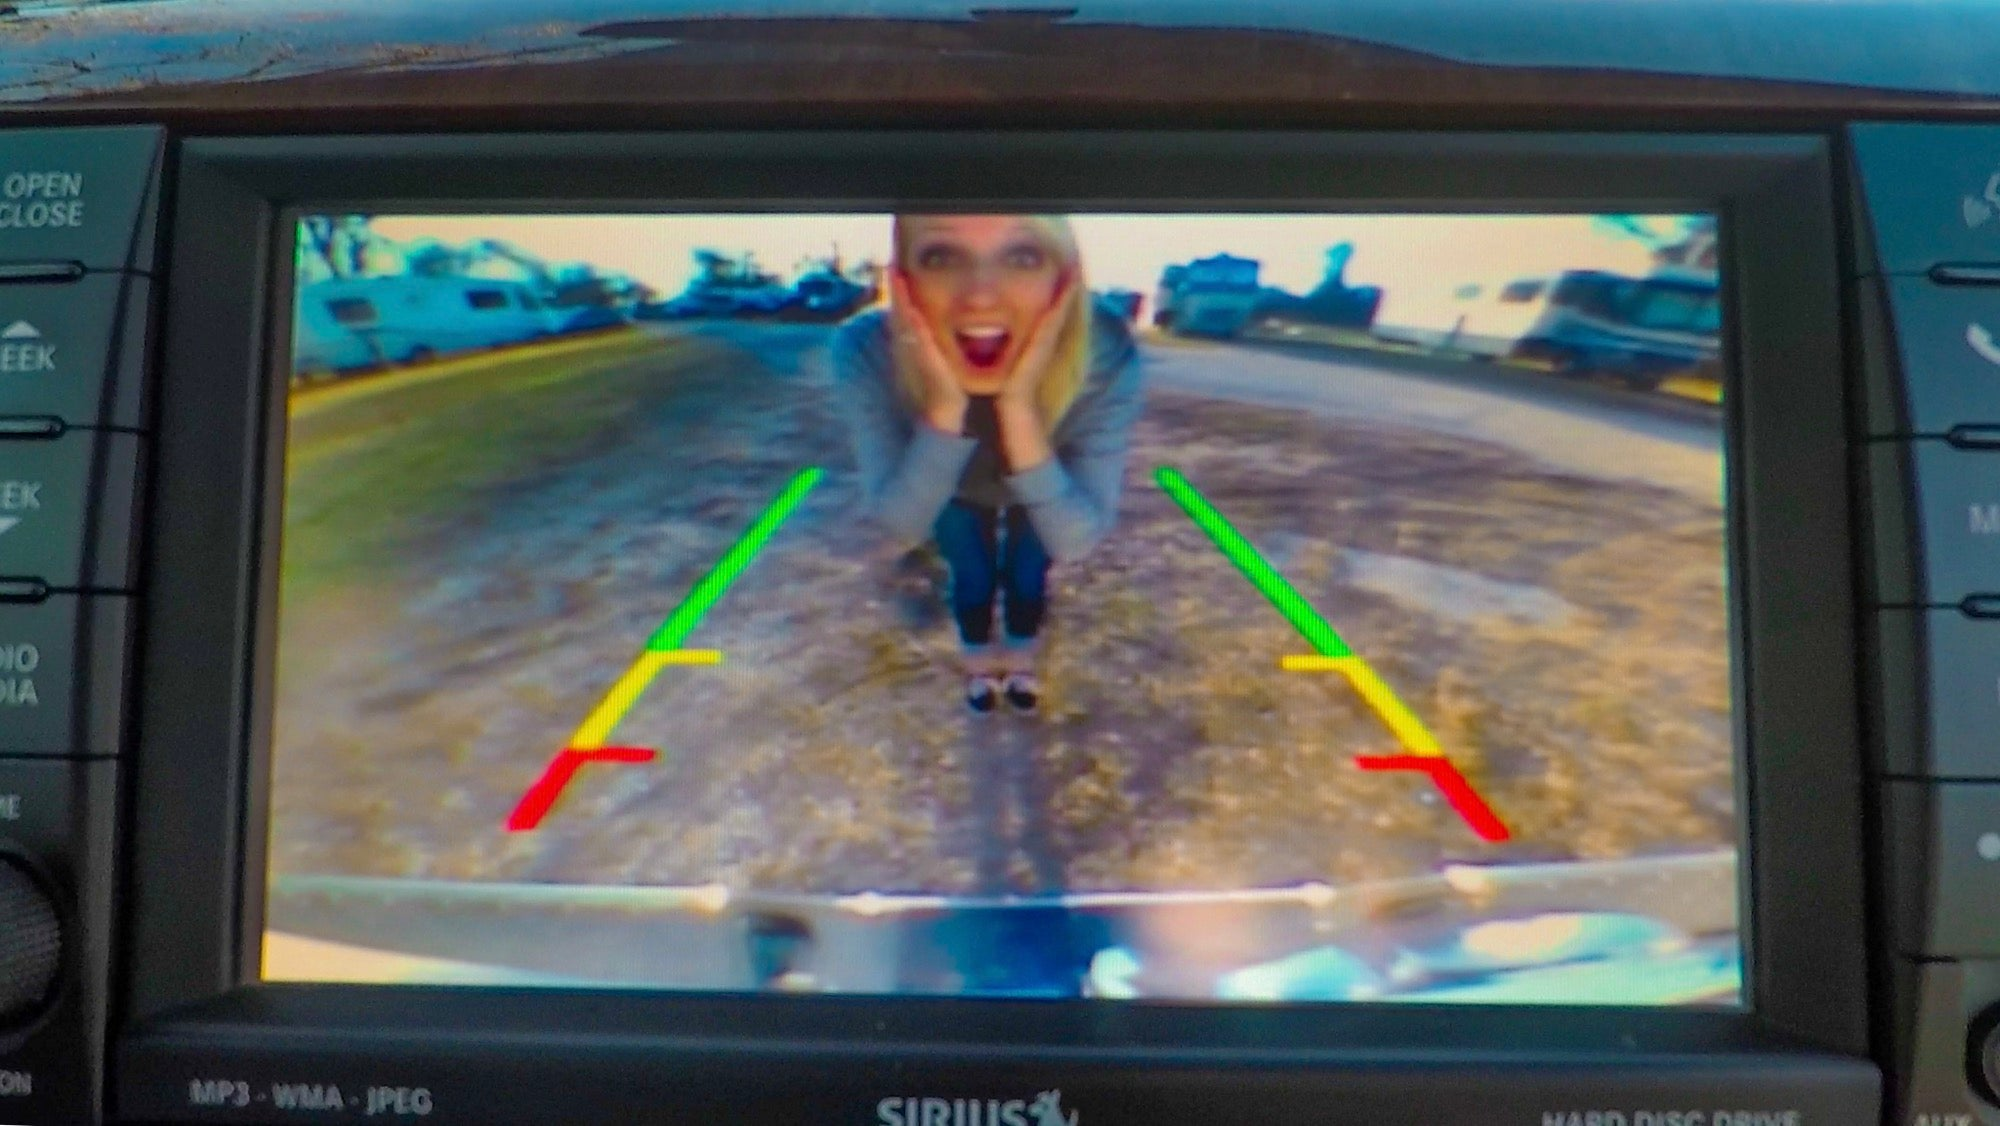 An RV Backup Camera is a good investment for new or seasoned RVers.